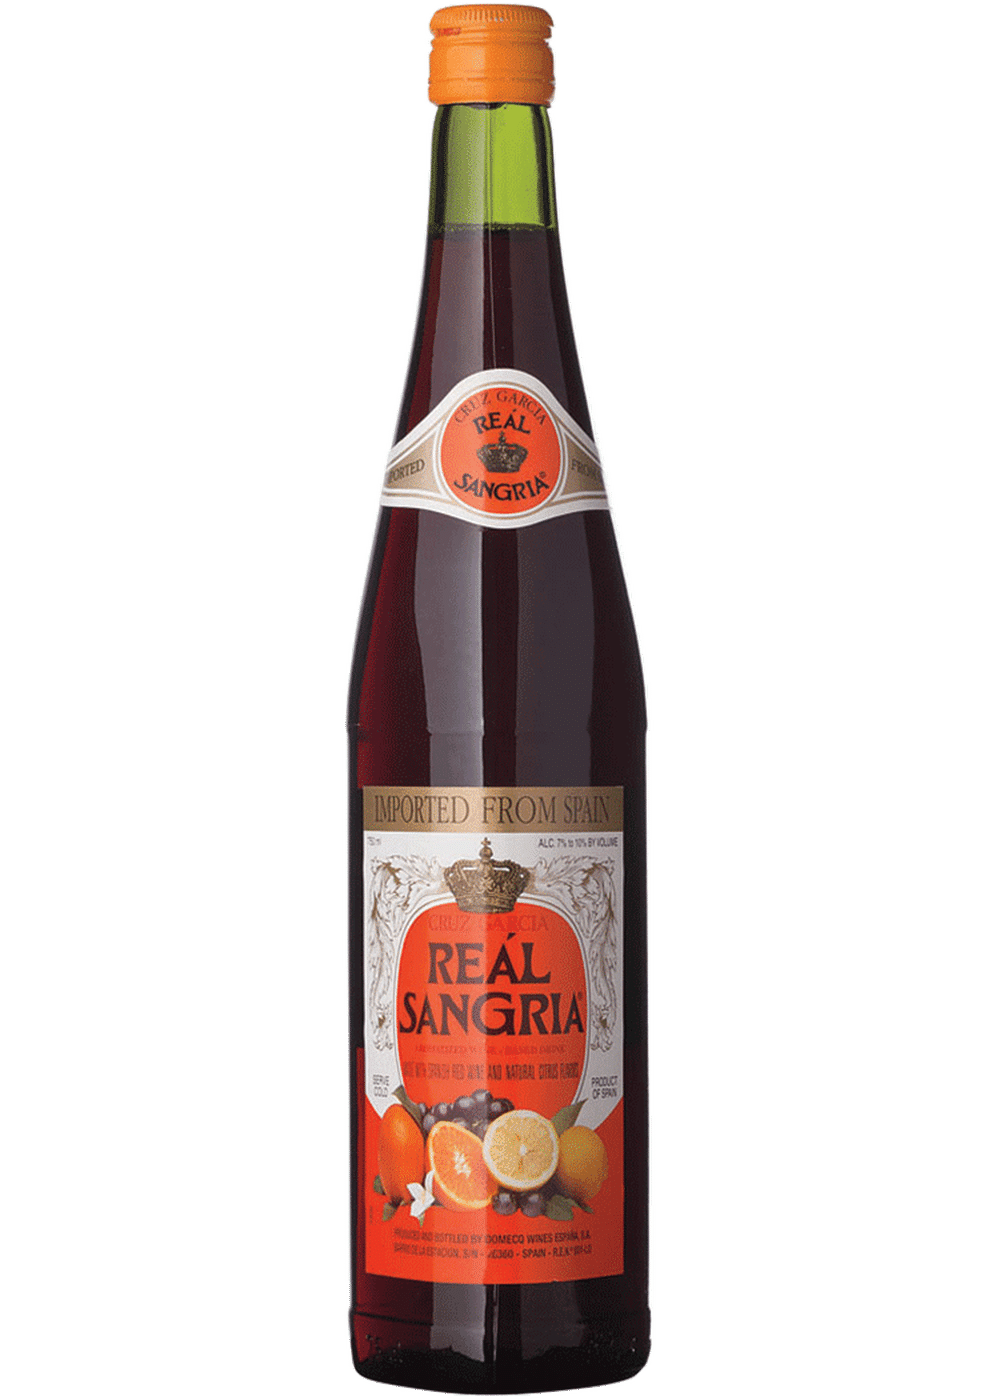 Cruz Garcia Real Sangria 1.5L NV